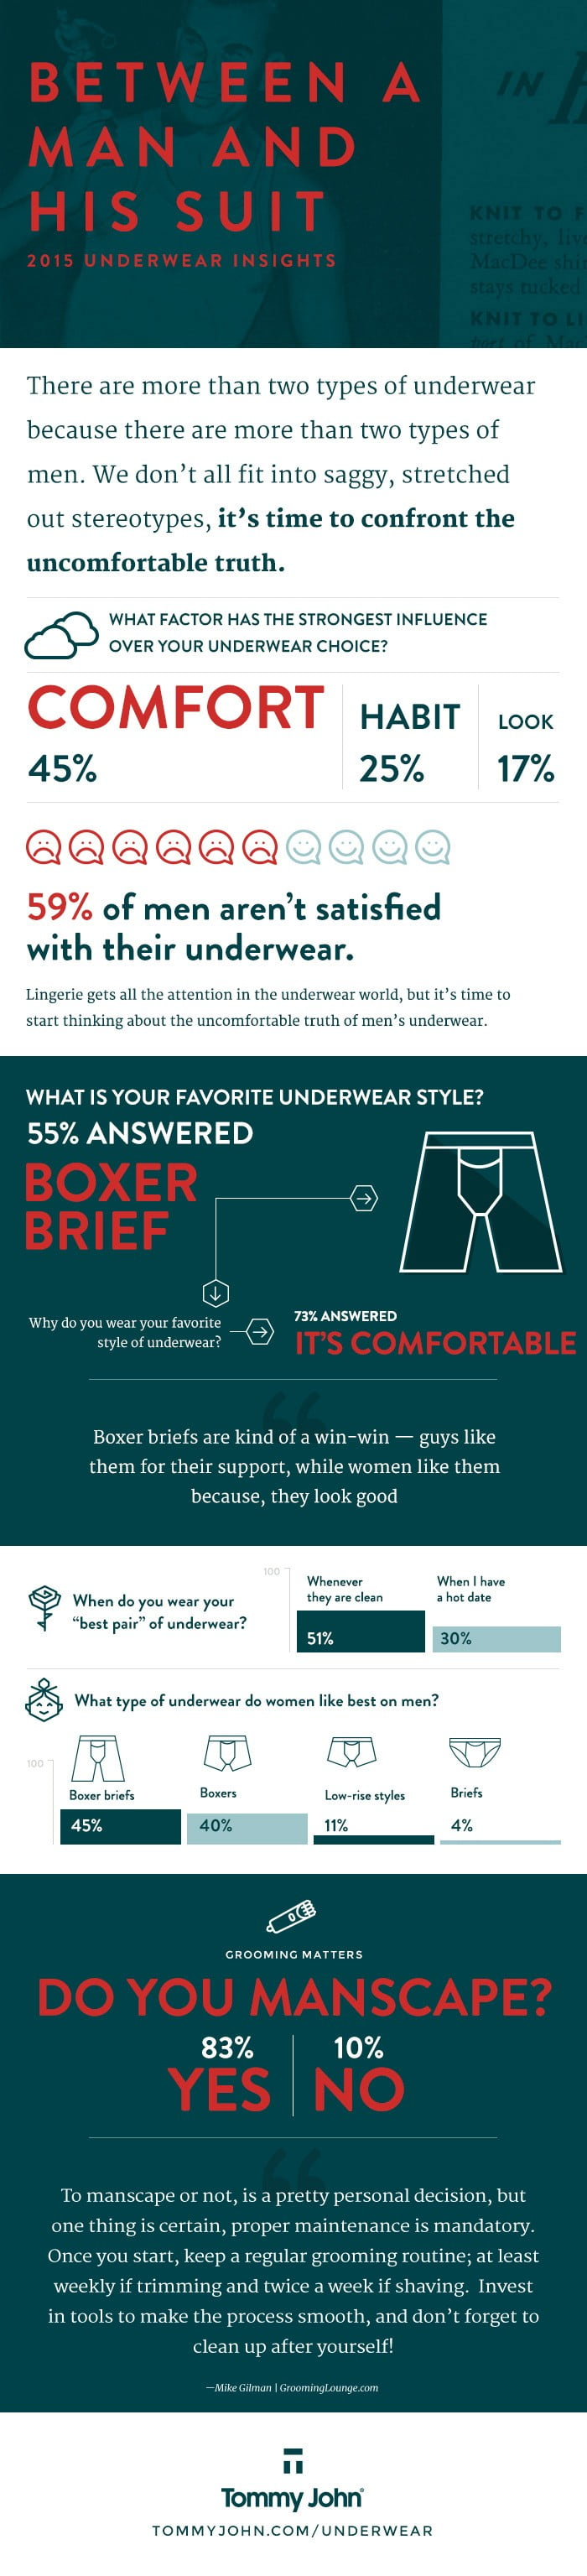 2015 male underwear insights